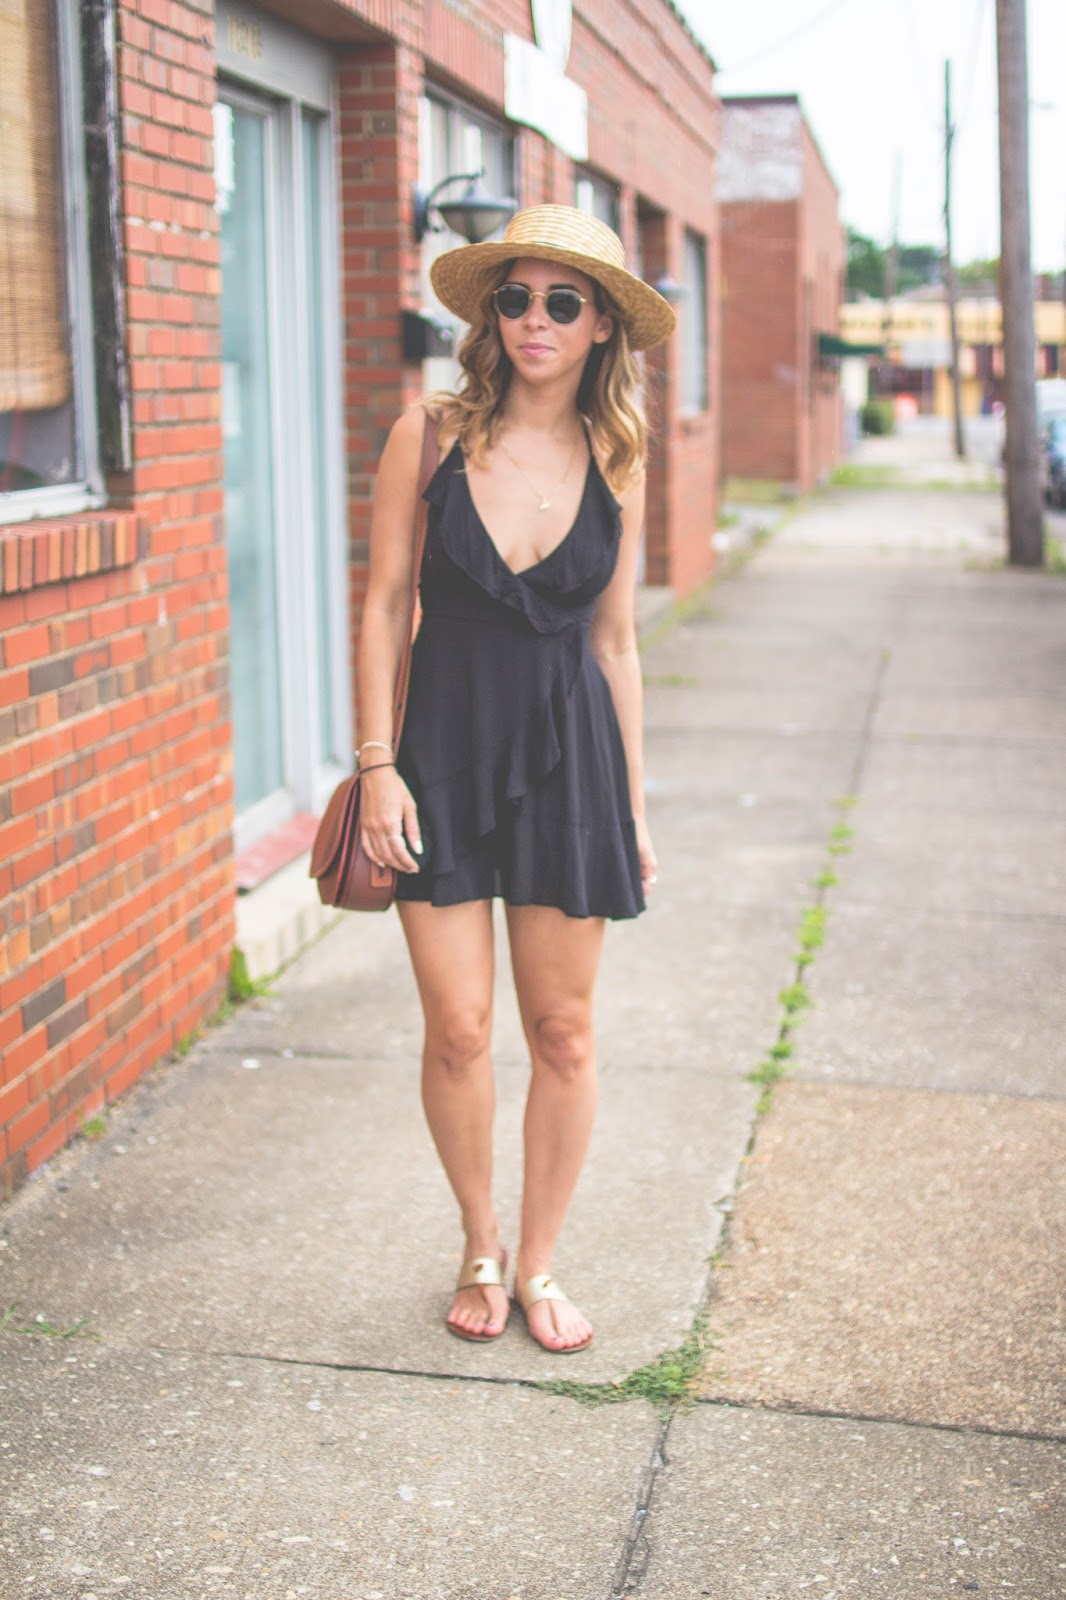 summer-lbd-wrap-dress-summer-style-boater-hat-dc-fashionblogger